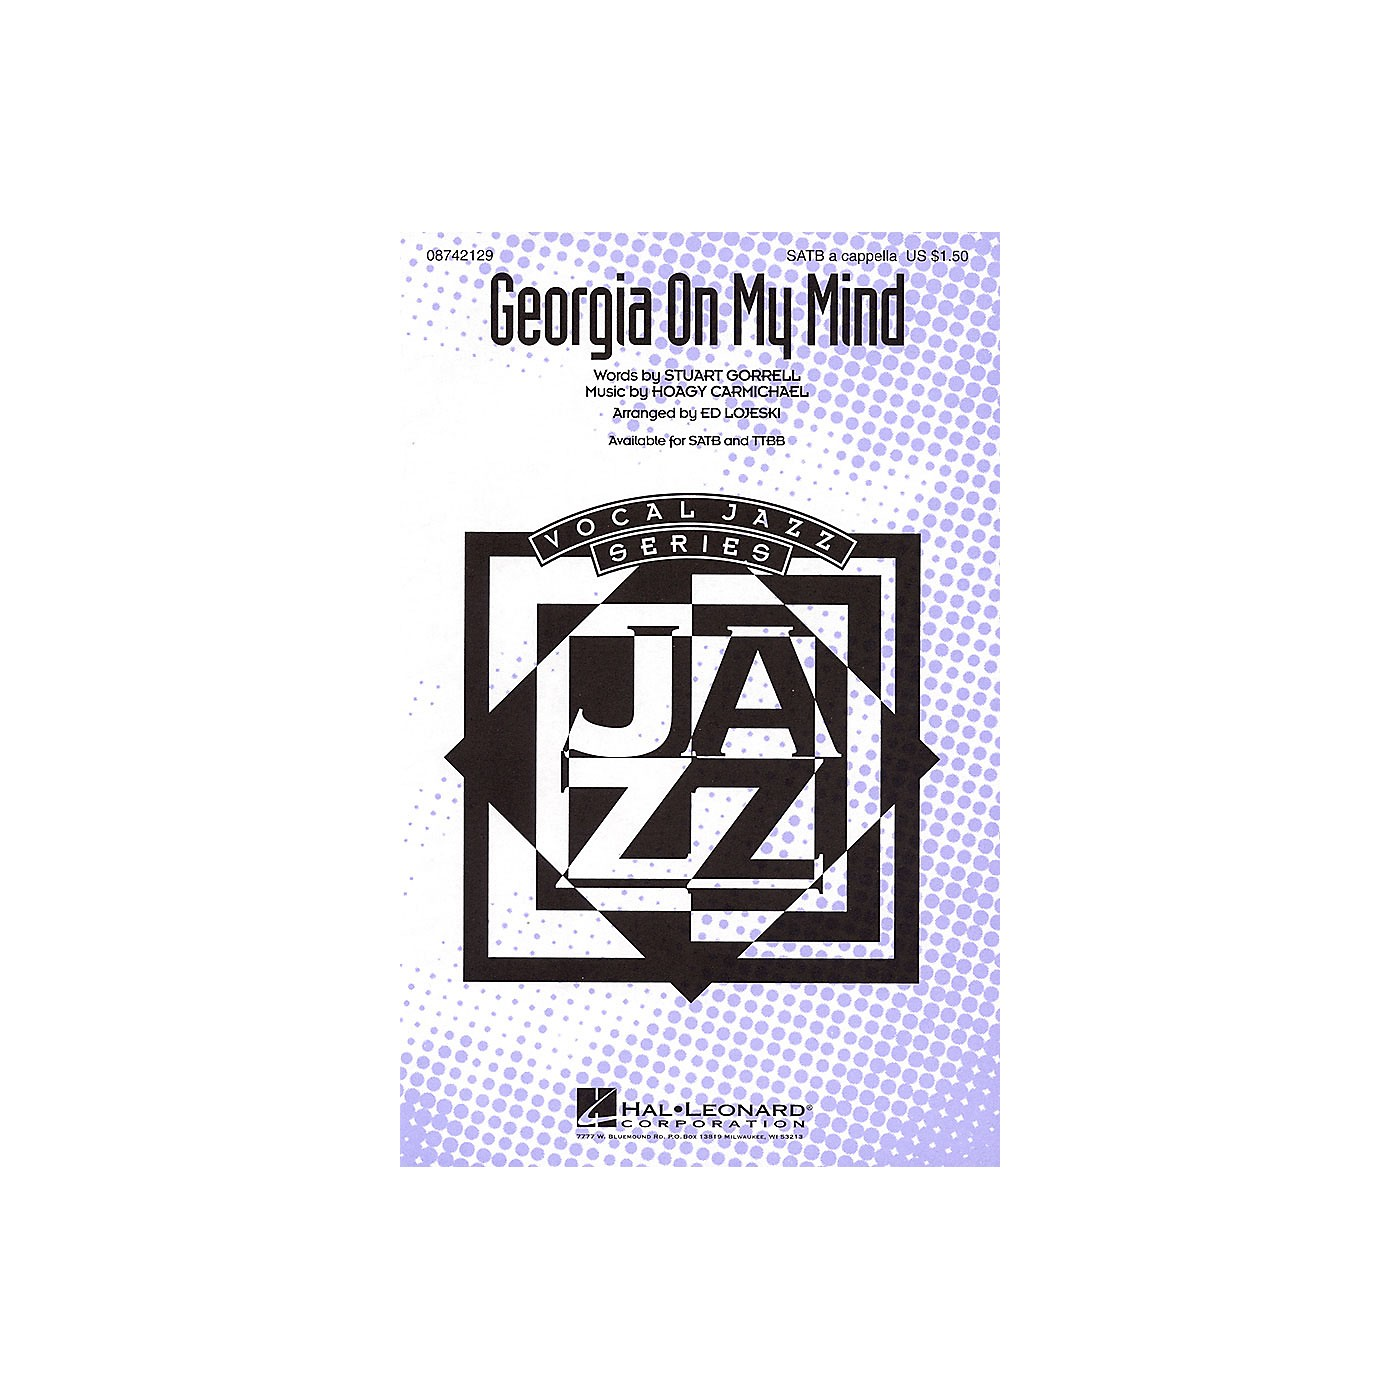 Hal Leonard Georgia on My Mind SATB a cappella arranged by Ed Lojeski thumbnail